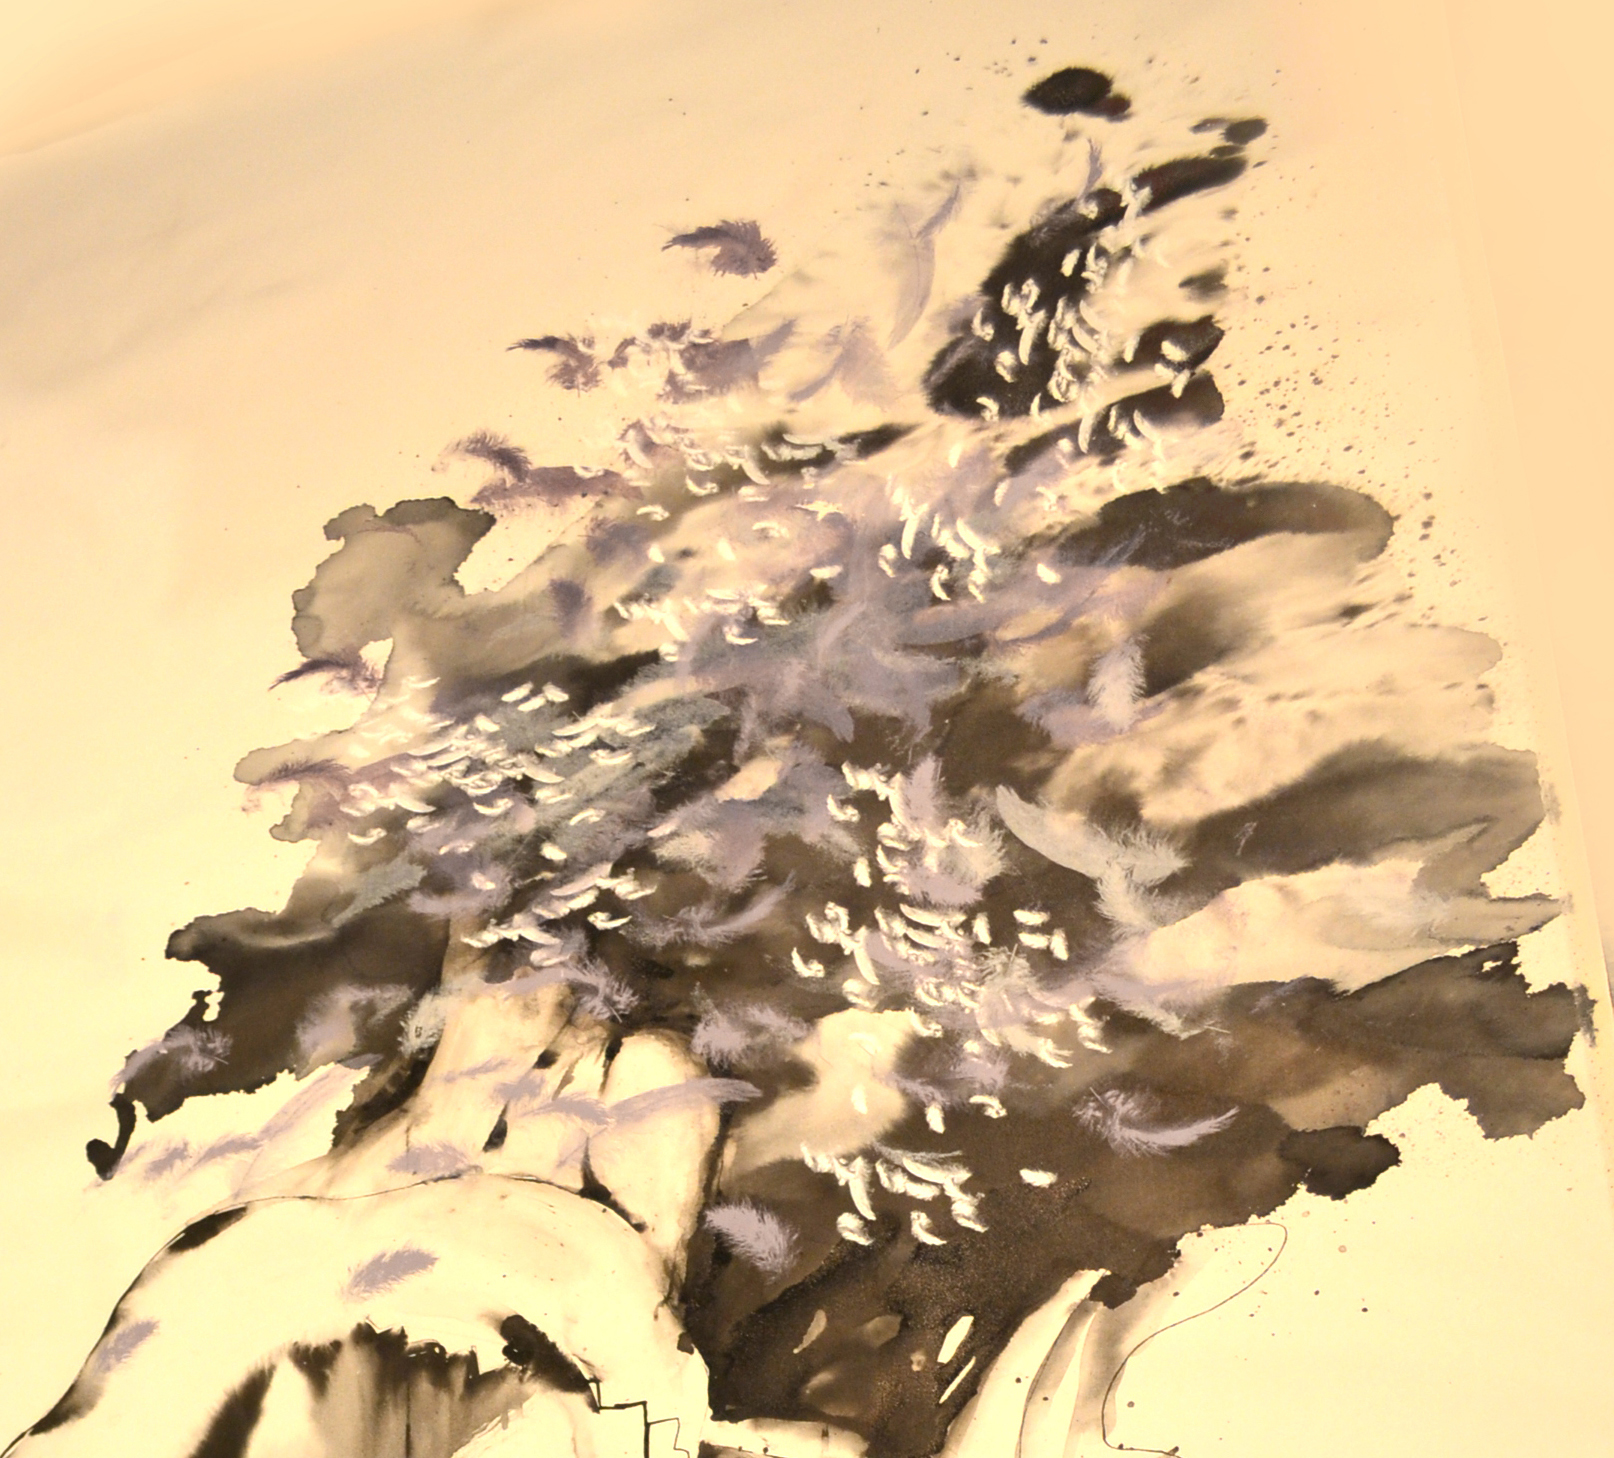 sumi ink drawing, Busted